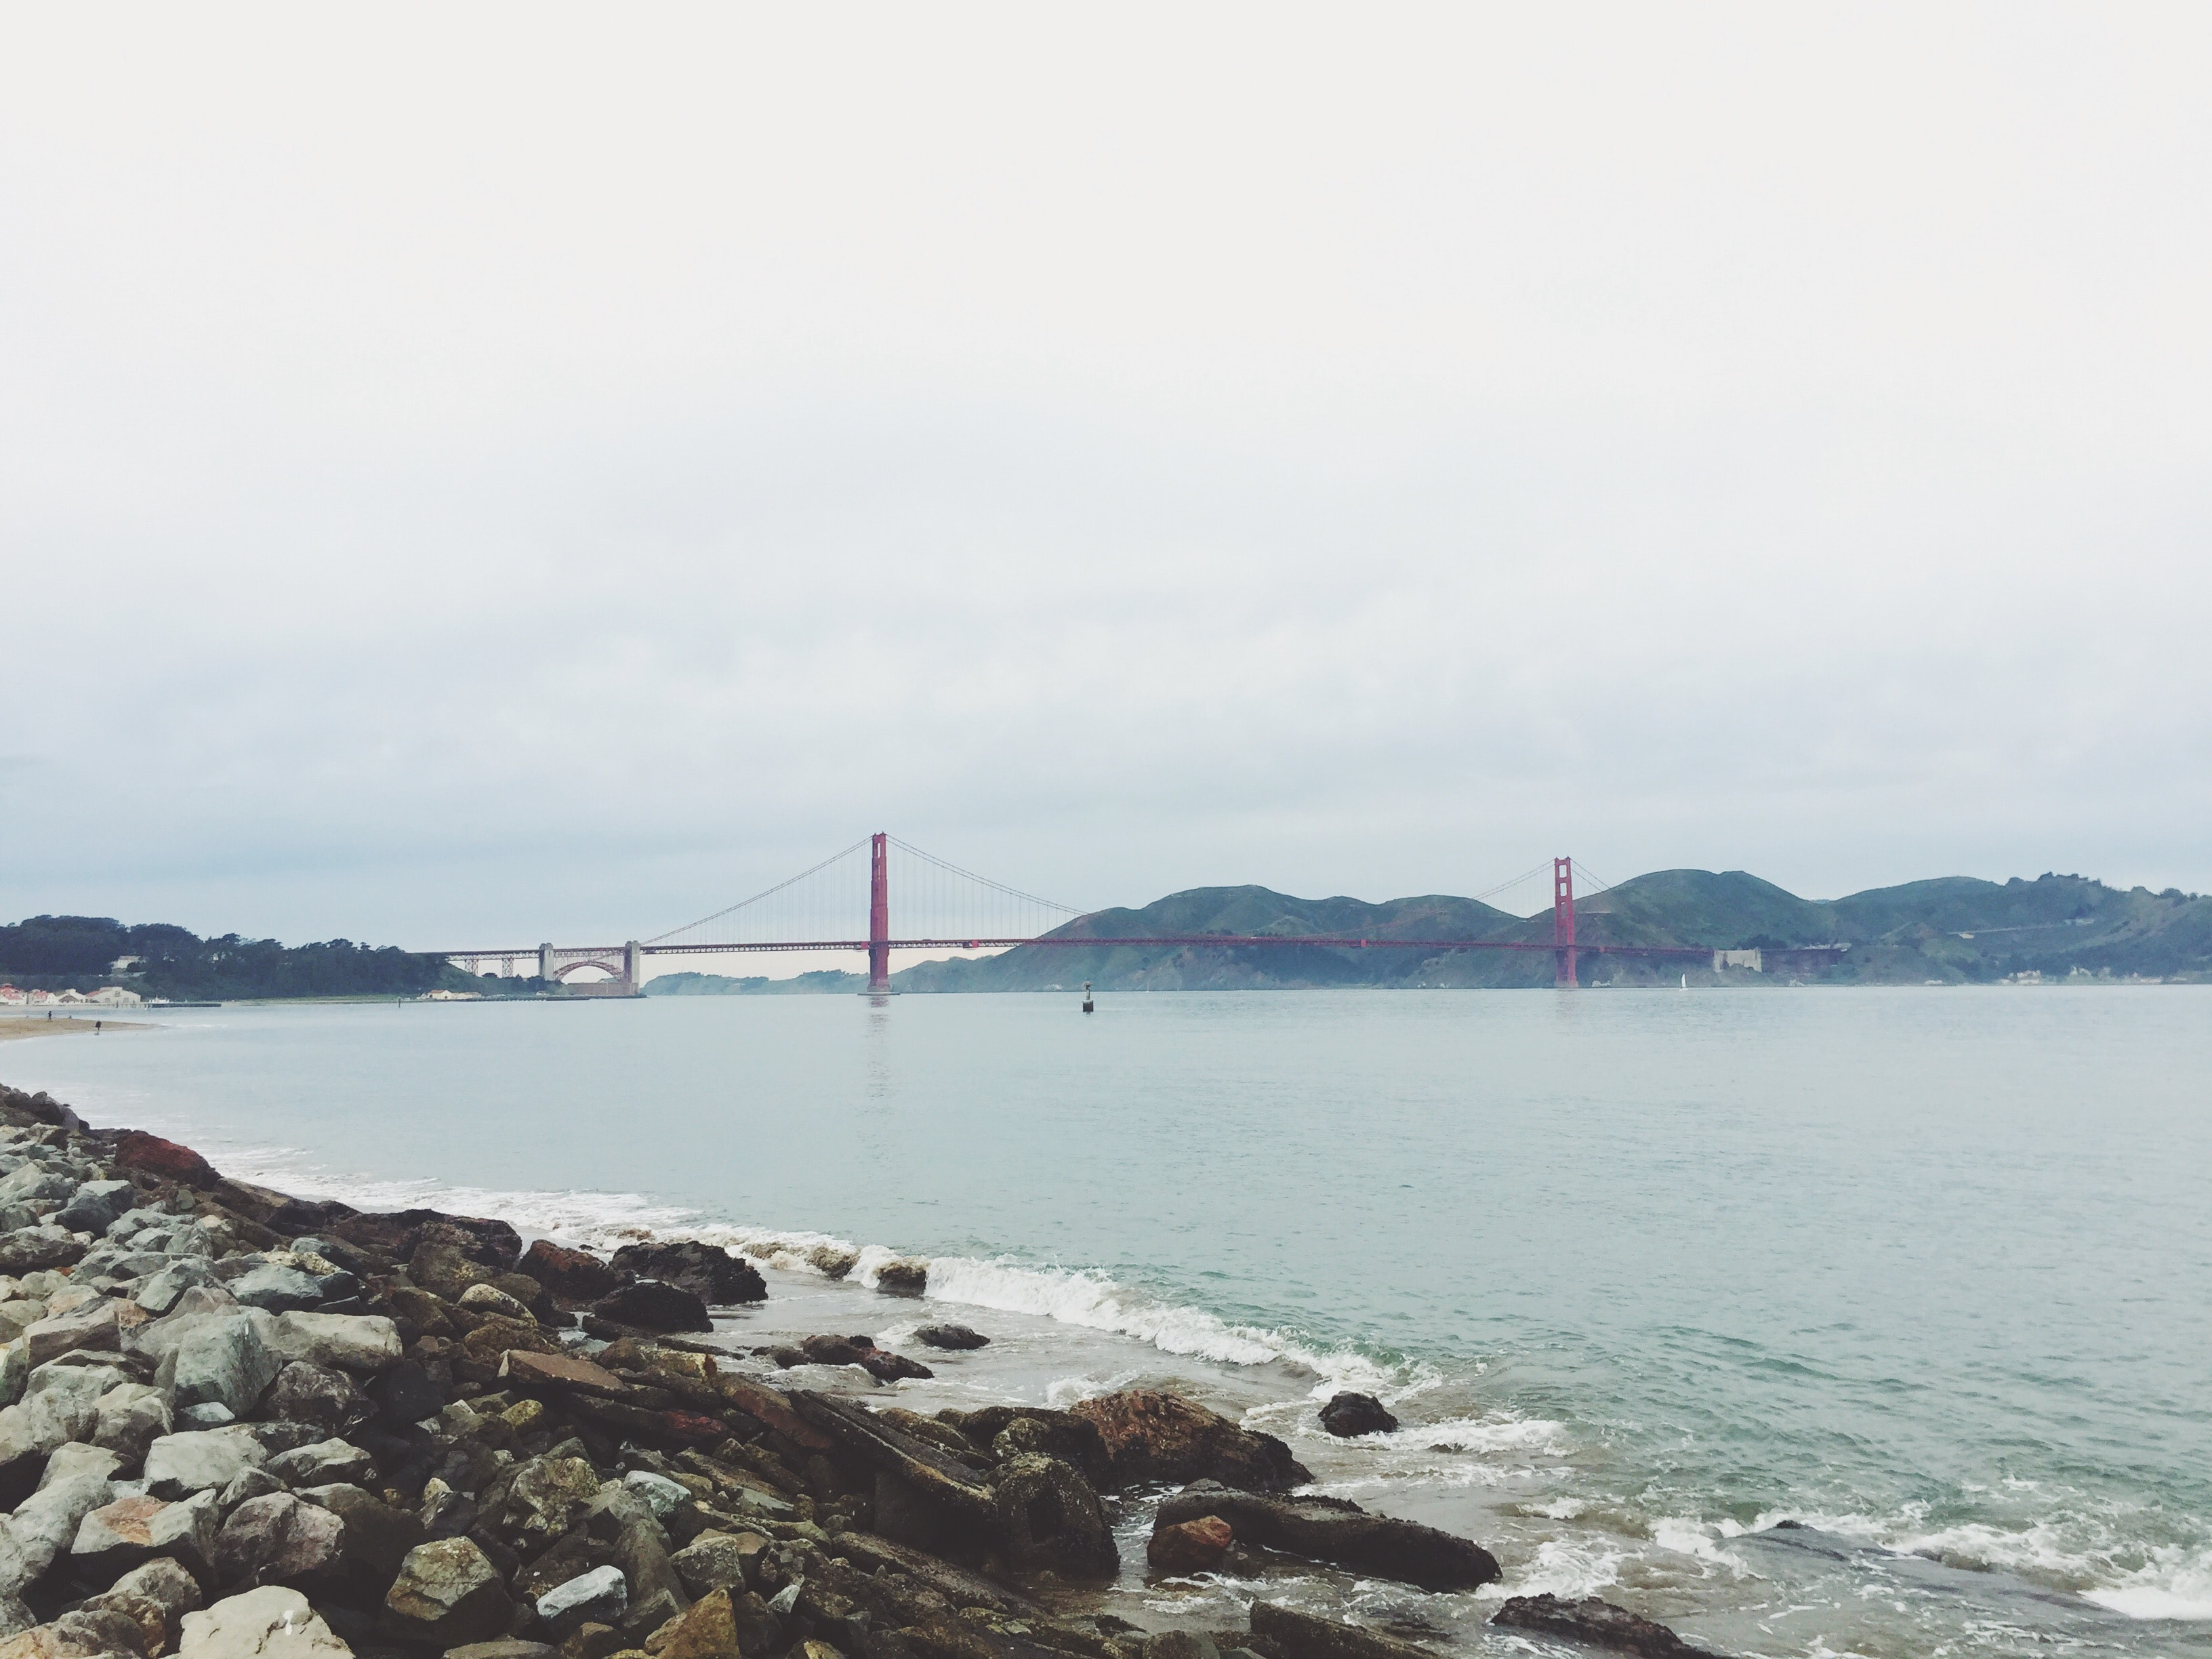 shore view of Golden Gate Bridge, San Francisco during day